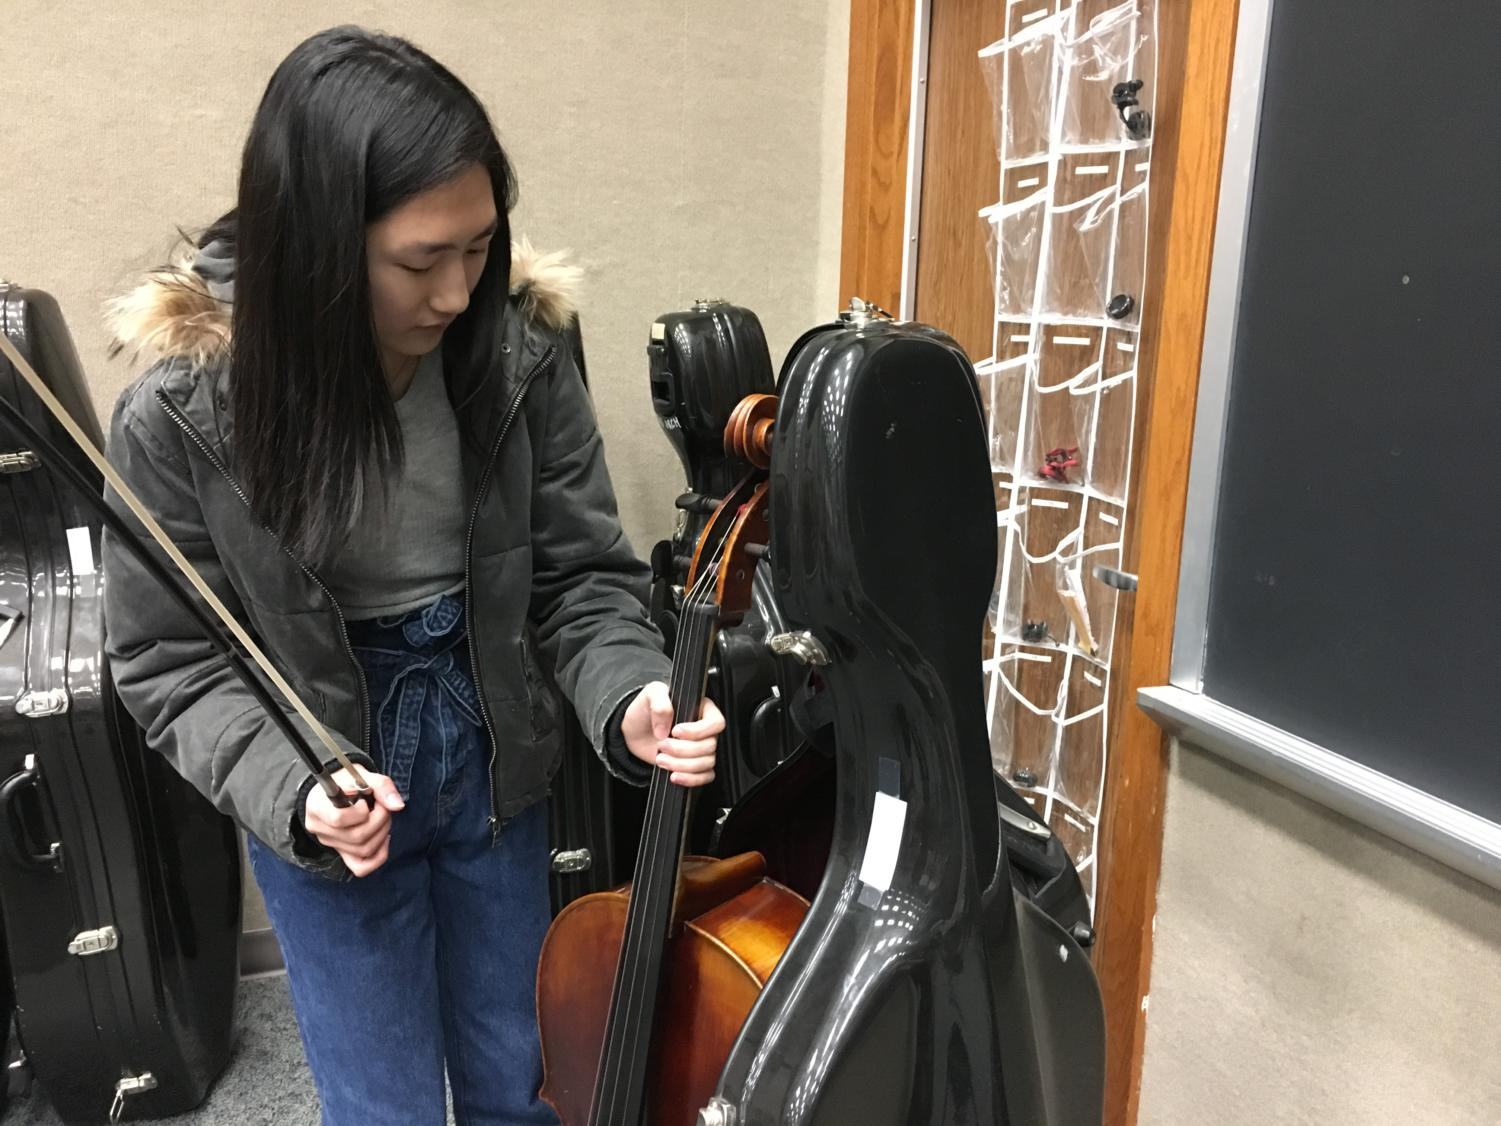 """Carol You, member of Symphony Orchestra and sophomore, unpacks her cello for an after school rehearsal. You had already practiced her chamber music in class in order to prepare for the upcoming chamber music concert on Jan. 30 but said she was looking forward to running through it with the band members during rehearsal. """"We practice (our chamber music) after school with the percussion, winds, and brass,"""" You said."""